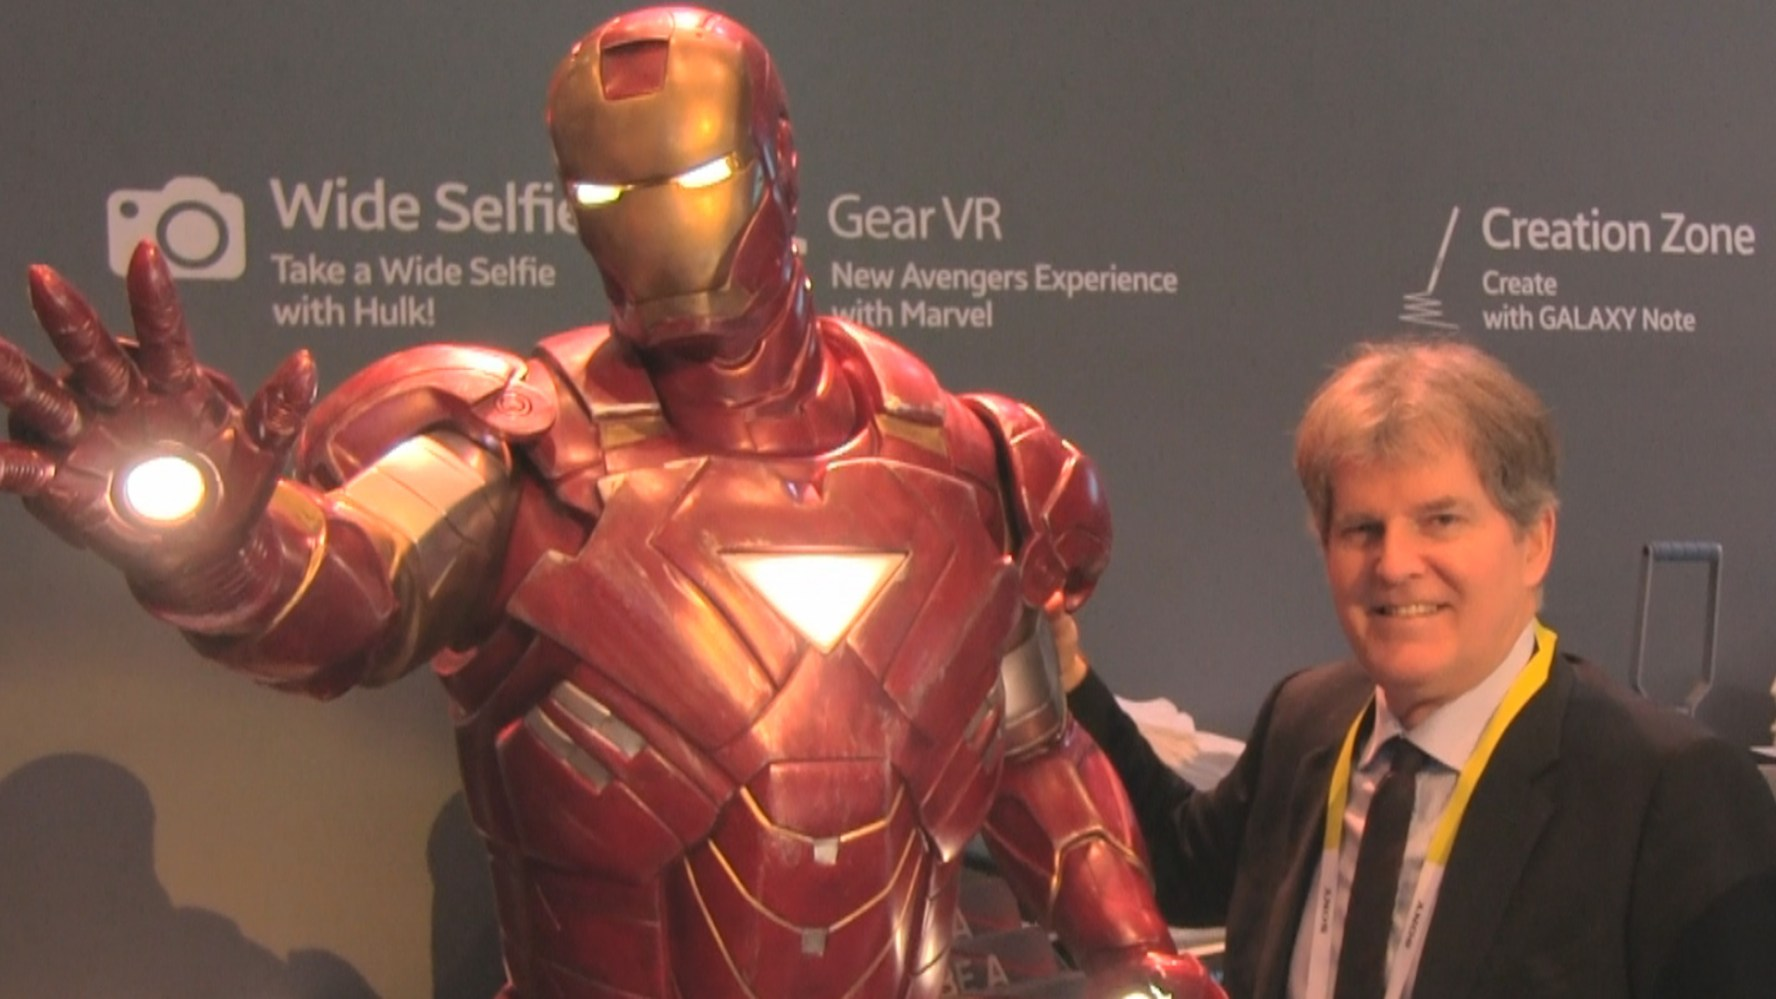 Mike and Iron Man at one of Samsung's many displays at International CES 2015.